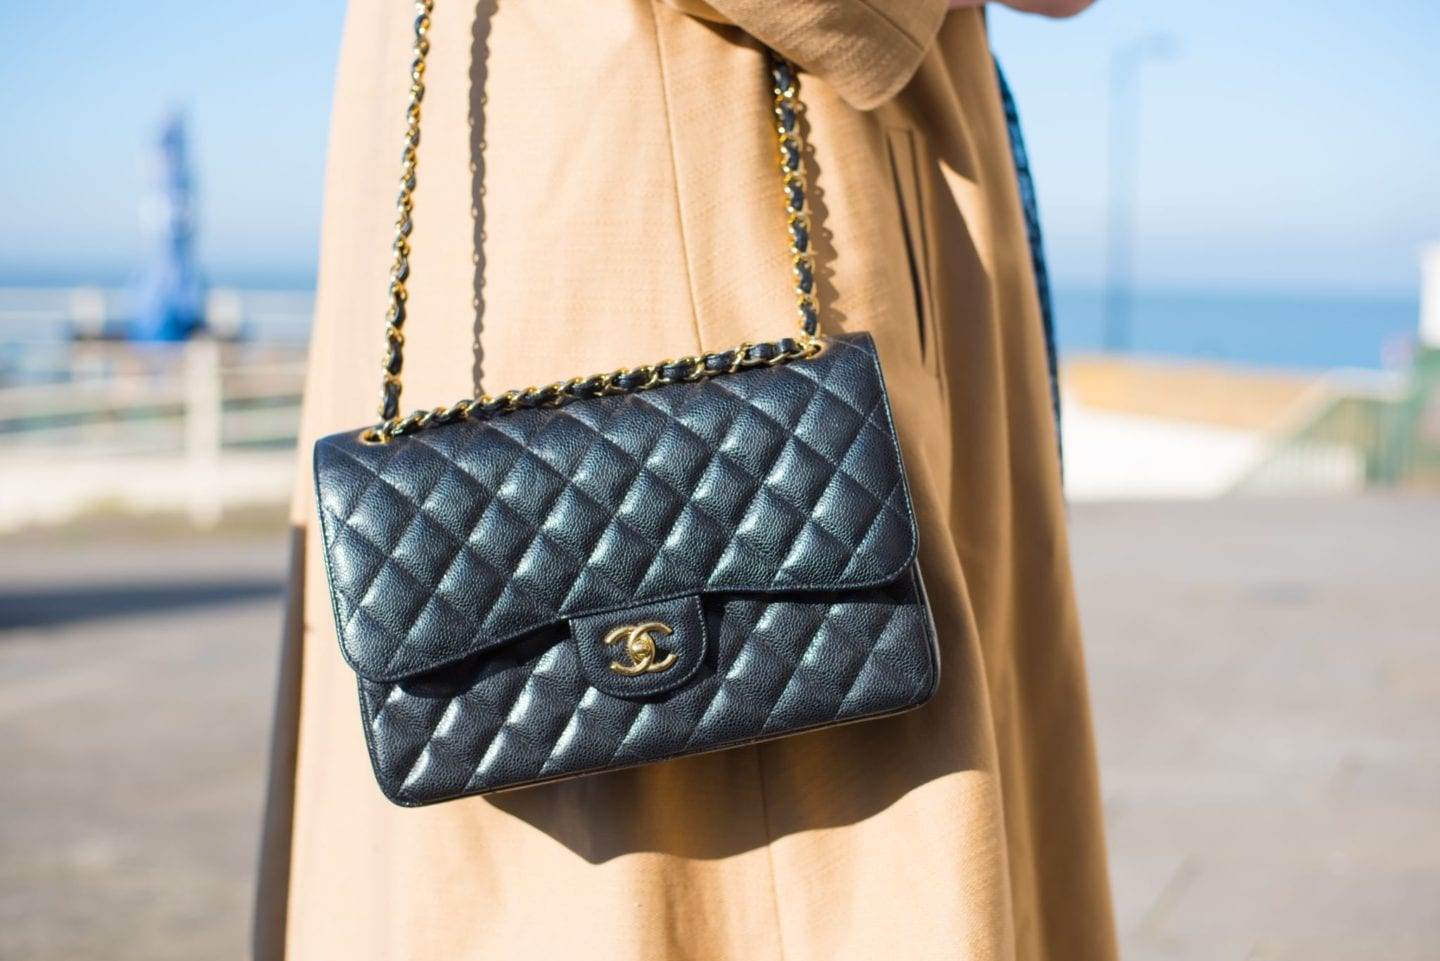 Handbags: Which Chanel Bags Are Crossbody?